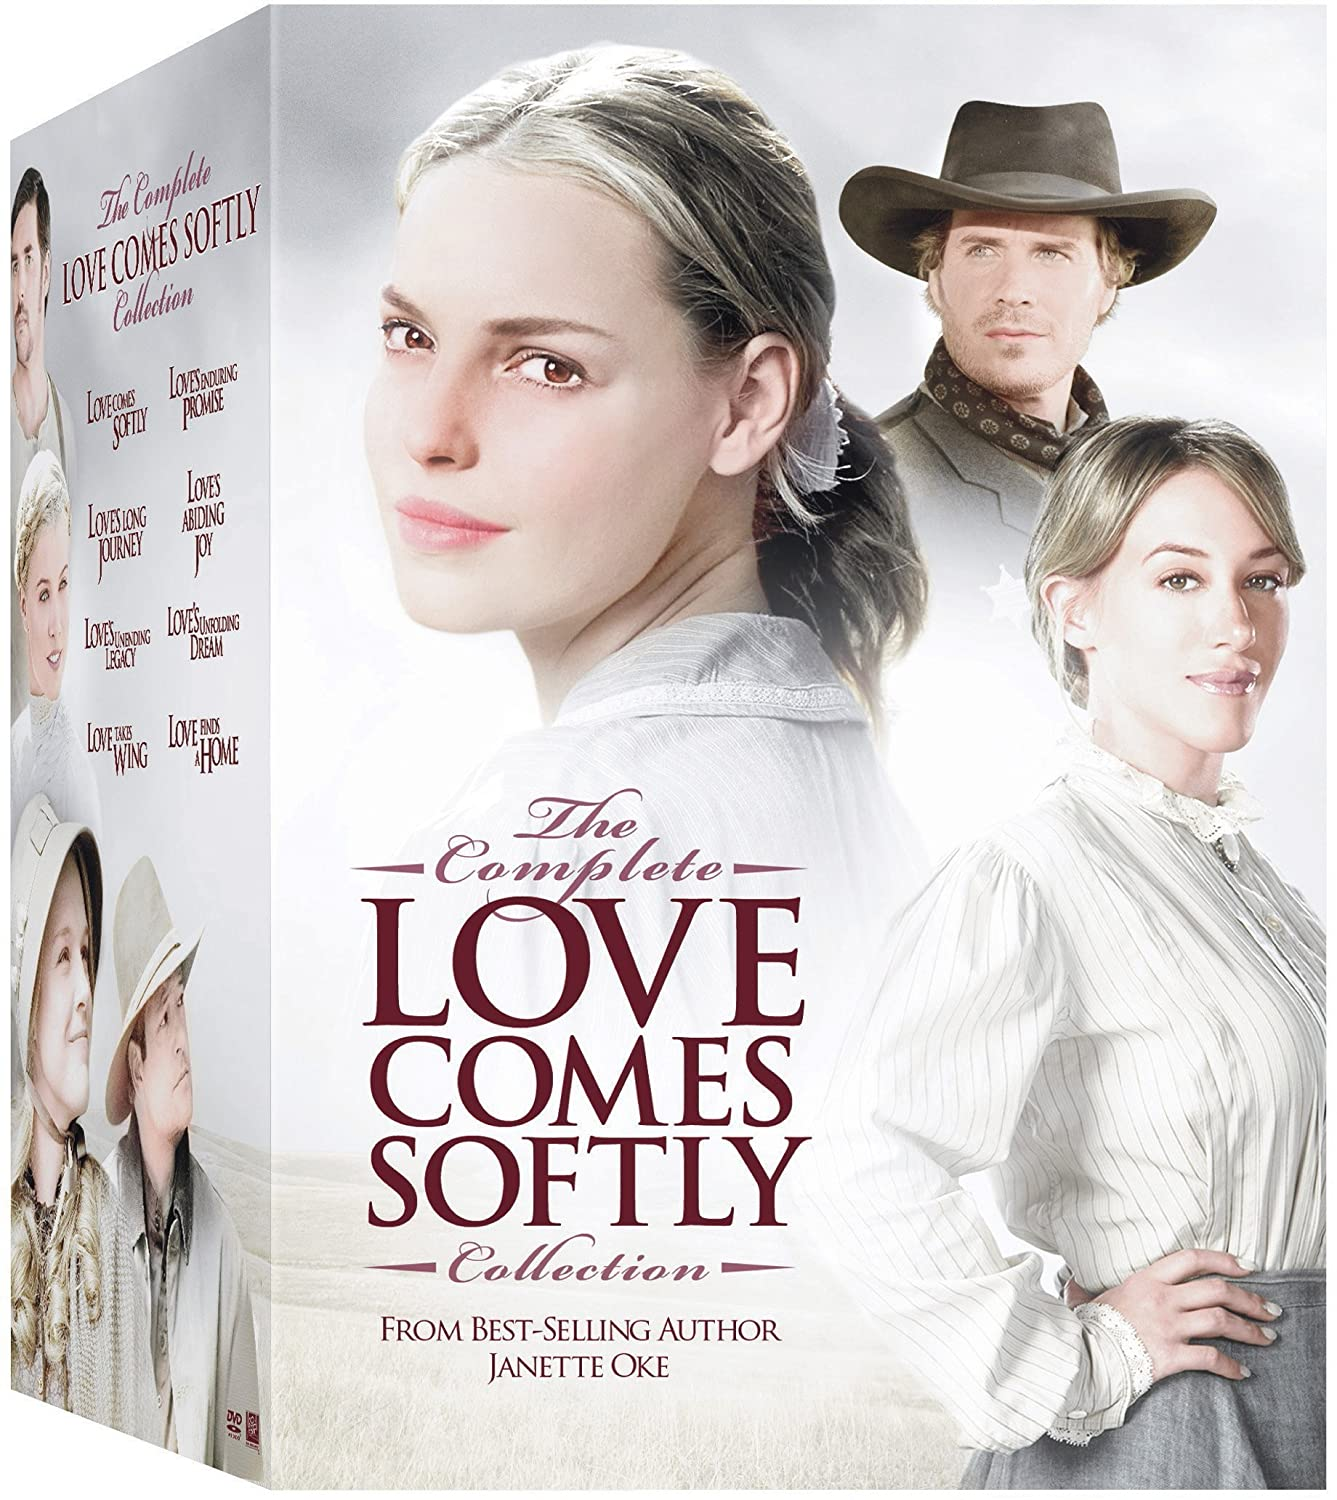 Box art for the Love Comes Softly collection